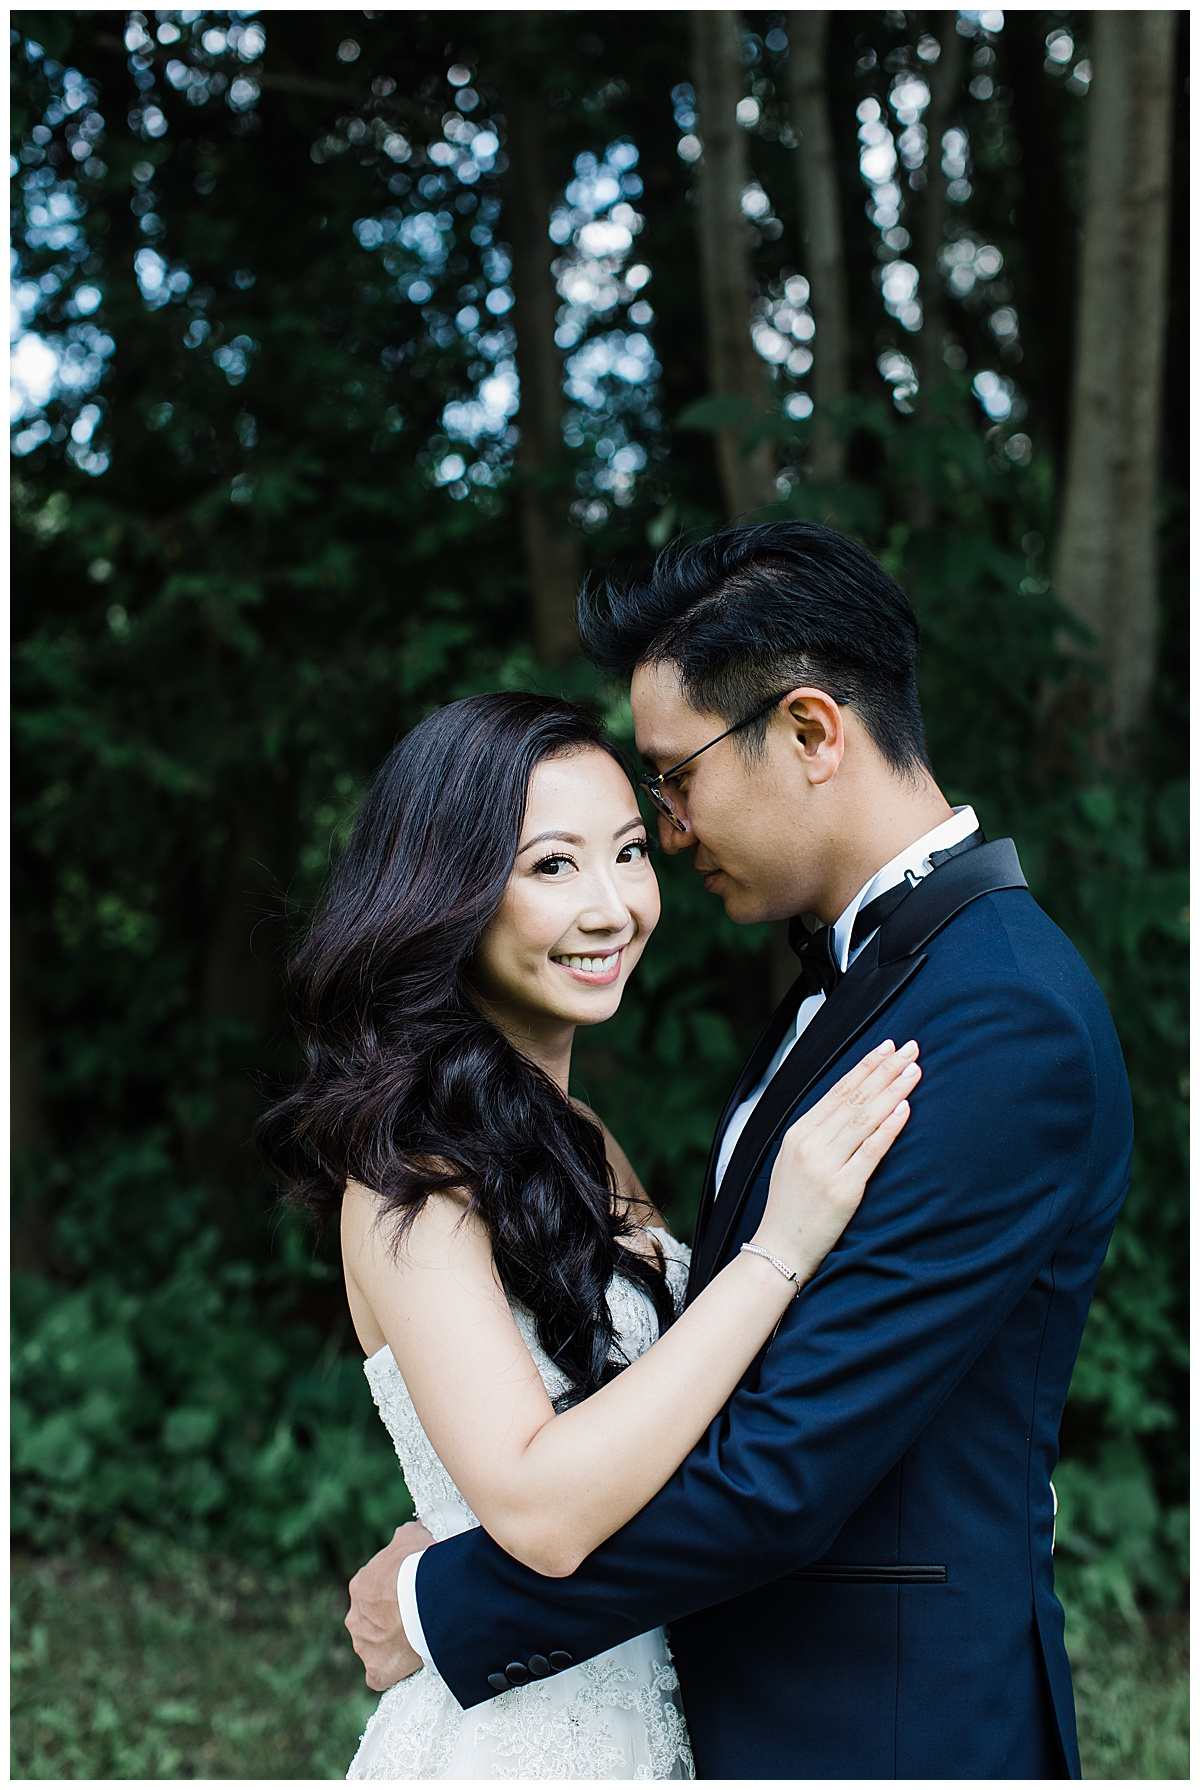 Bride and groom portrait| outdoor wedding portrait| Winery wedding| blue tux| Toronto photographer| 3photography